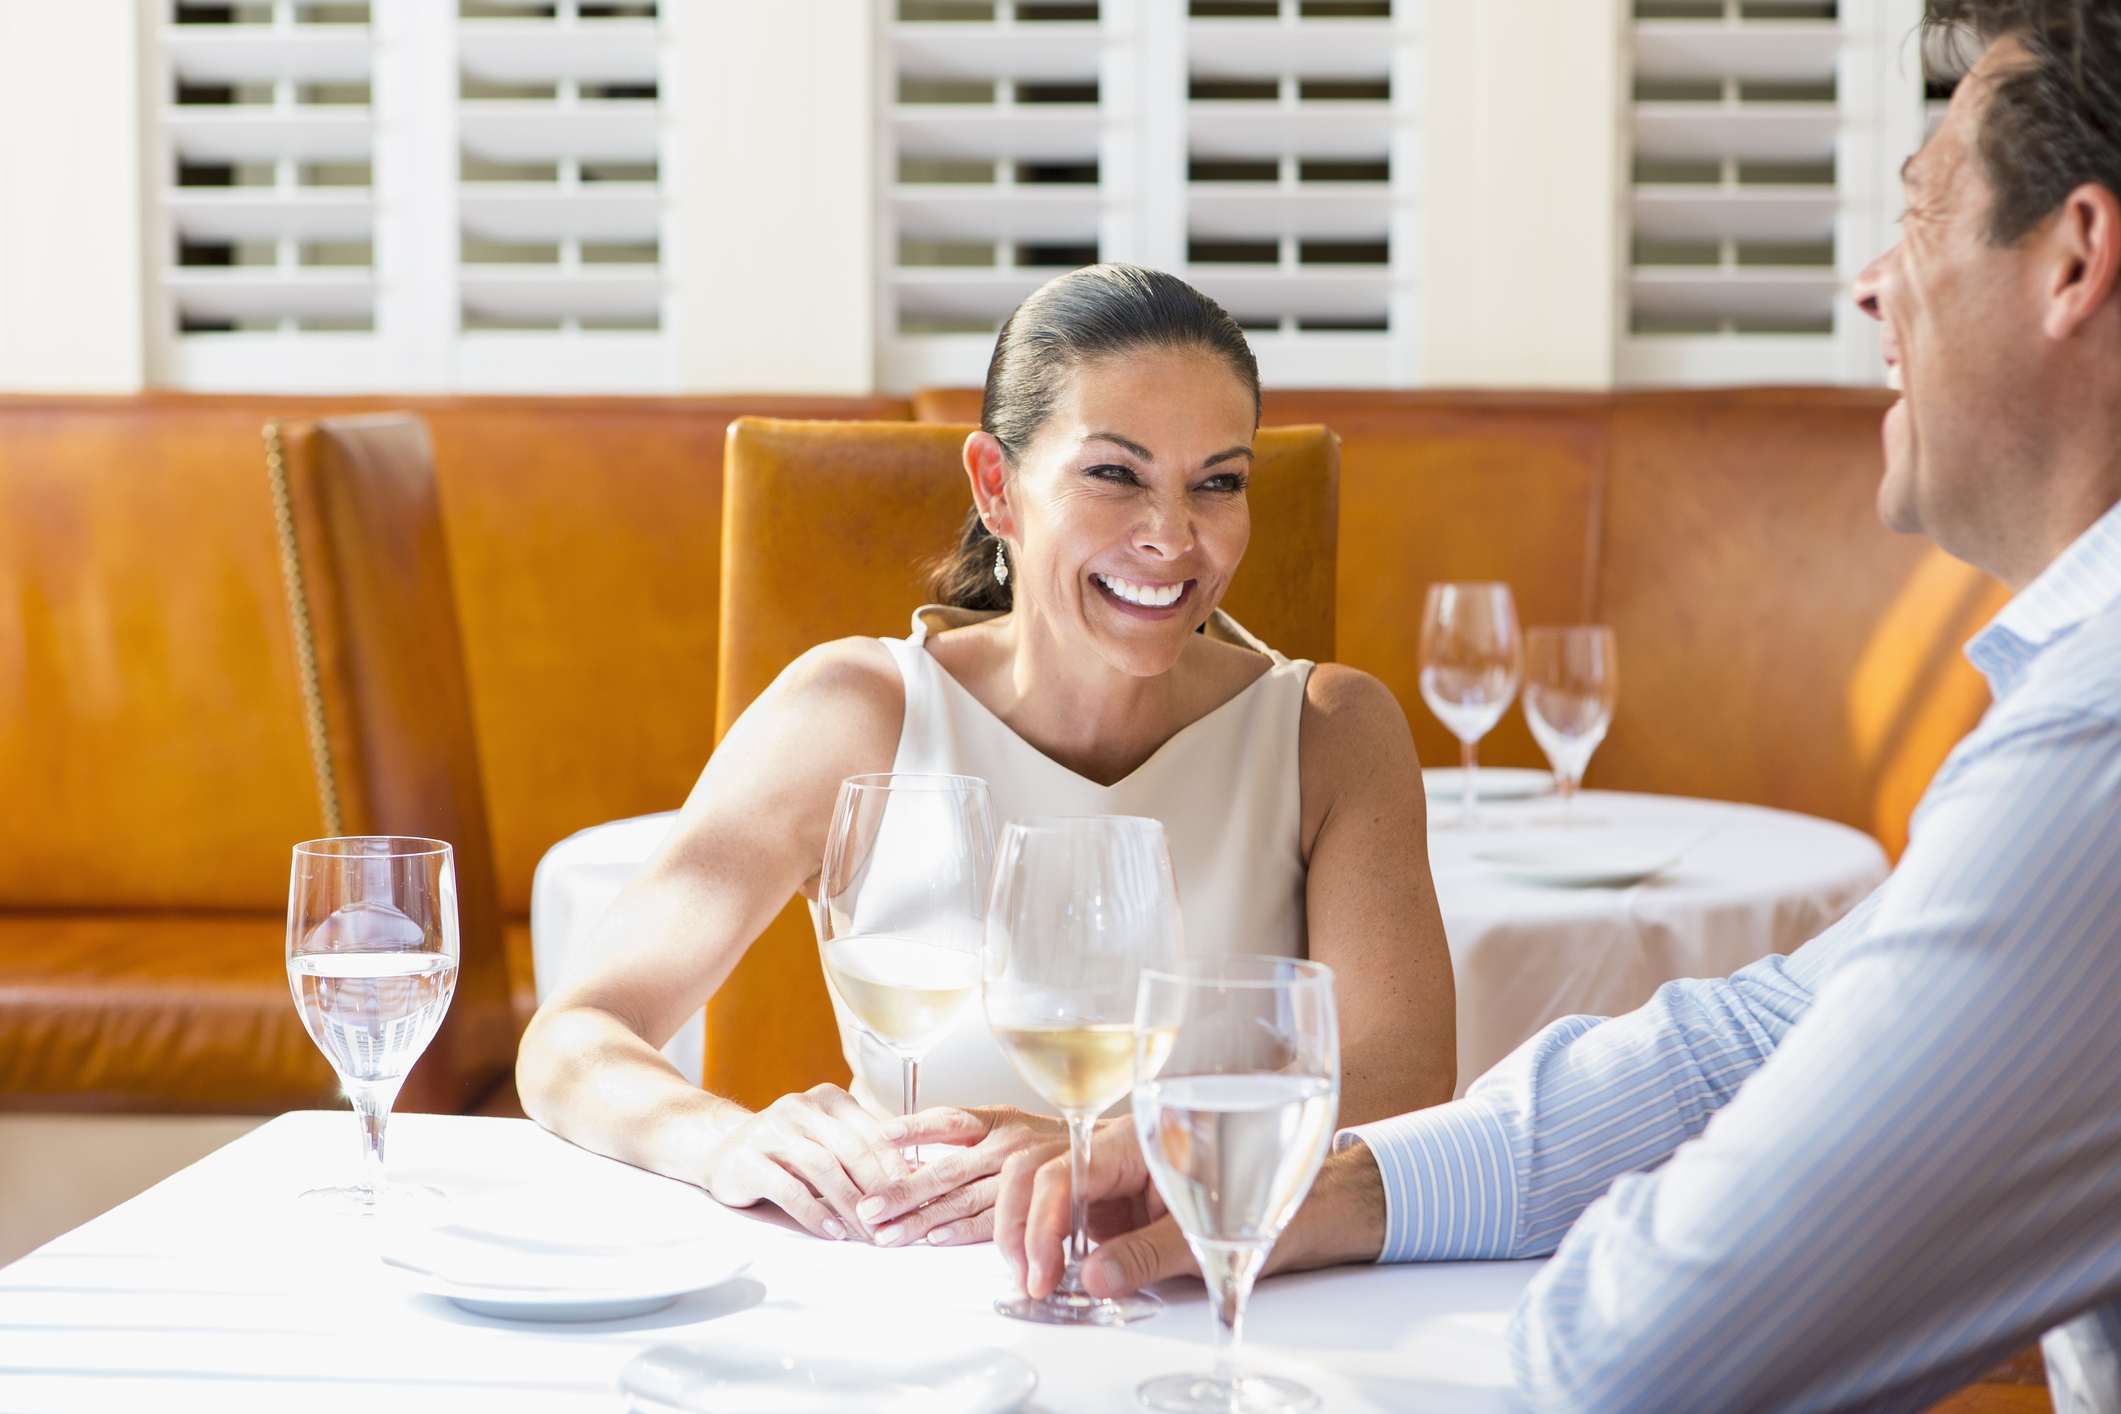 Romantic Restaurants In Albuquerque